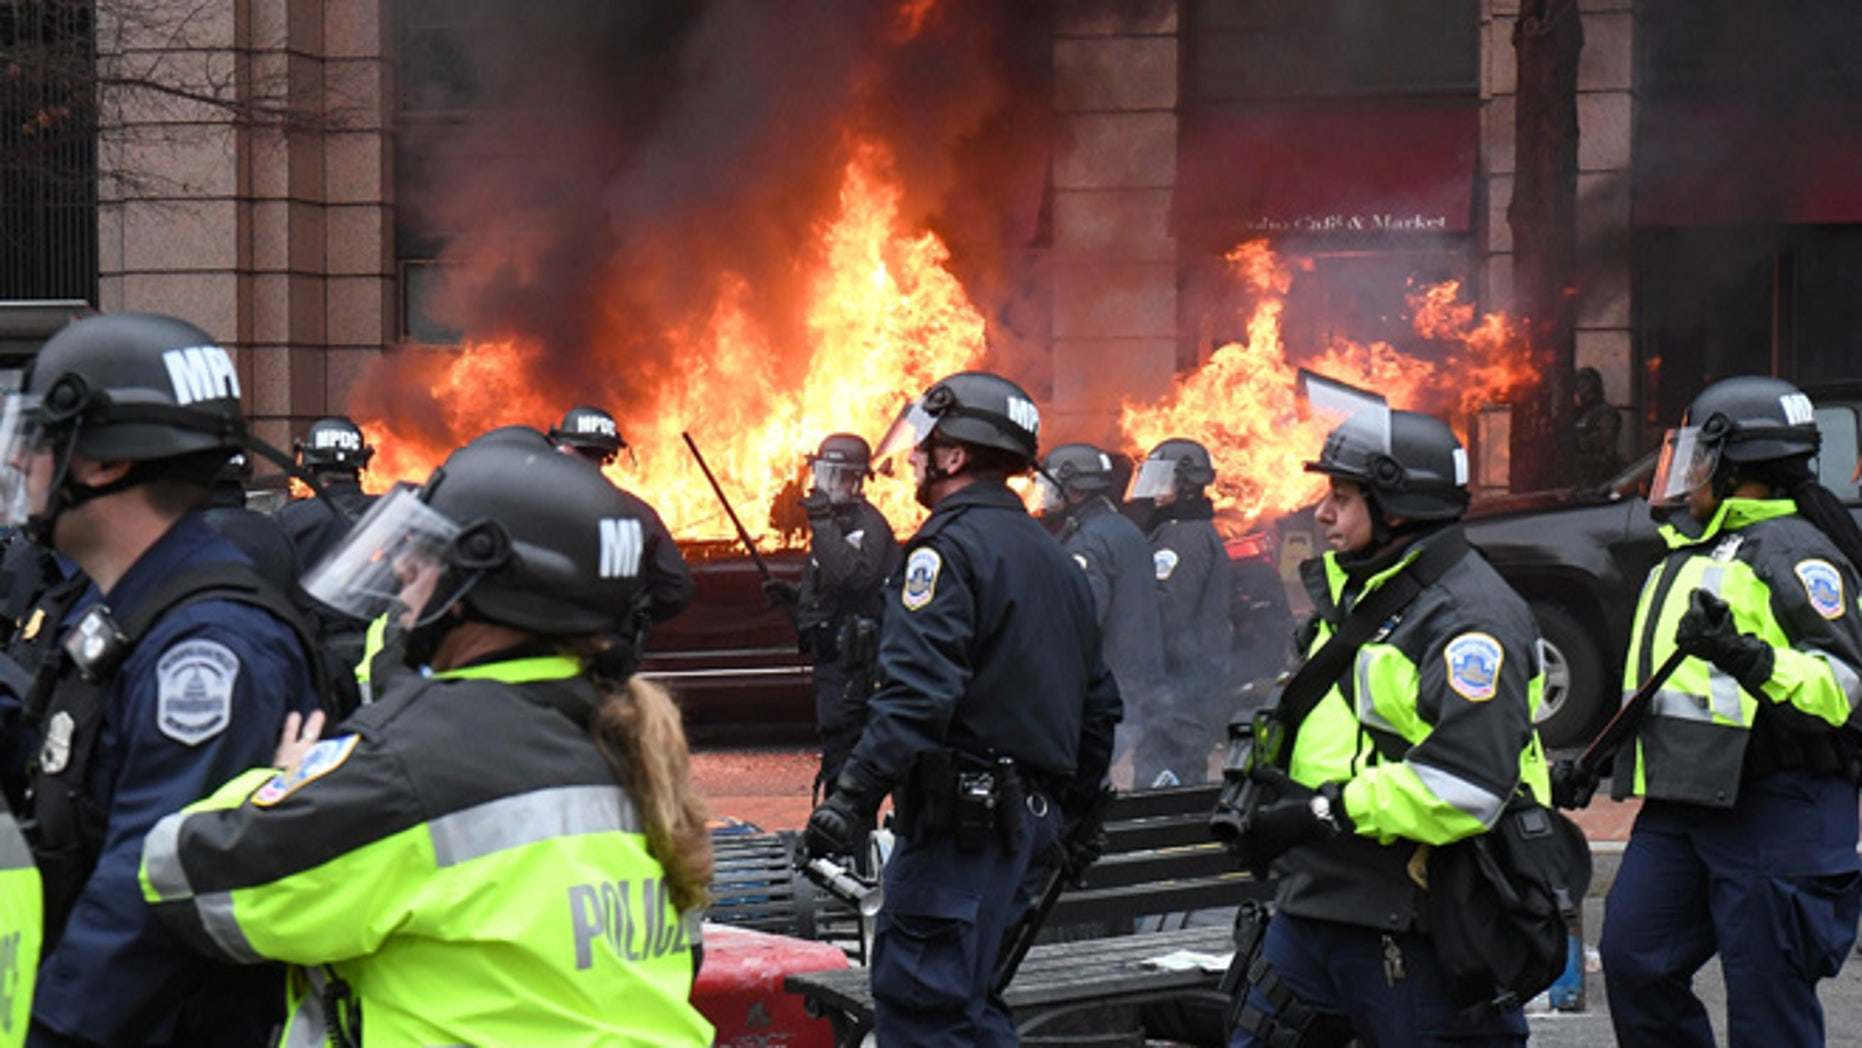 Police officers move protestors away from a car that was set on fire during protests near the inauguration of President Donald Trump in Washington, DC, U.S., January 20, 2017.  REUTERS/Bryan Woolston     TPX IMAGES OF THE DAY - RTSWL62